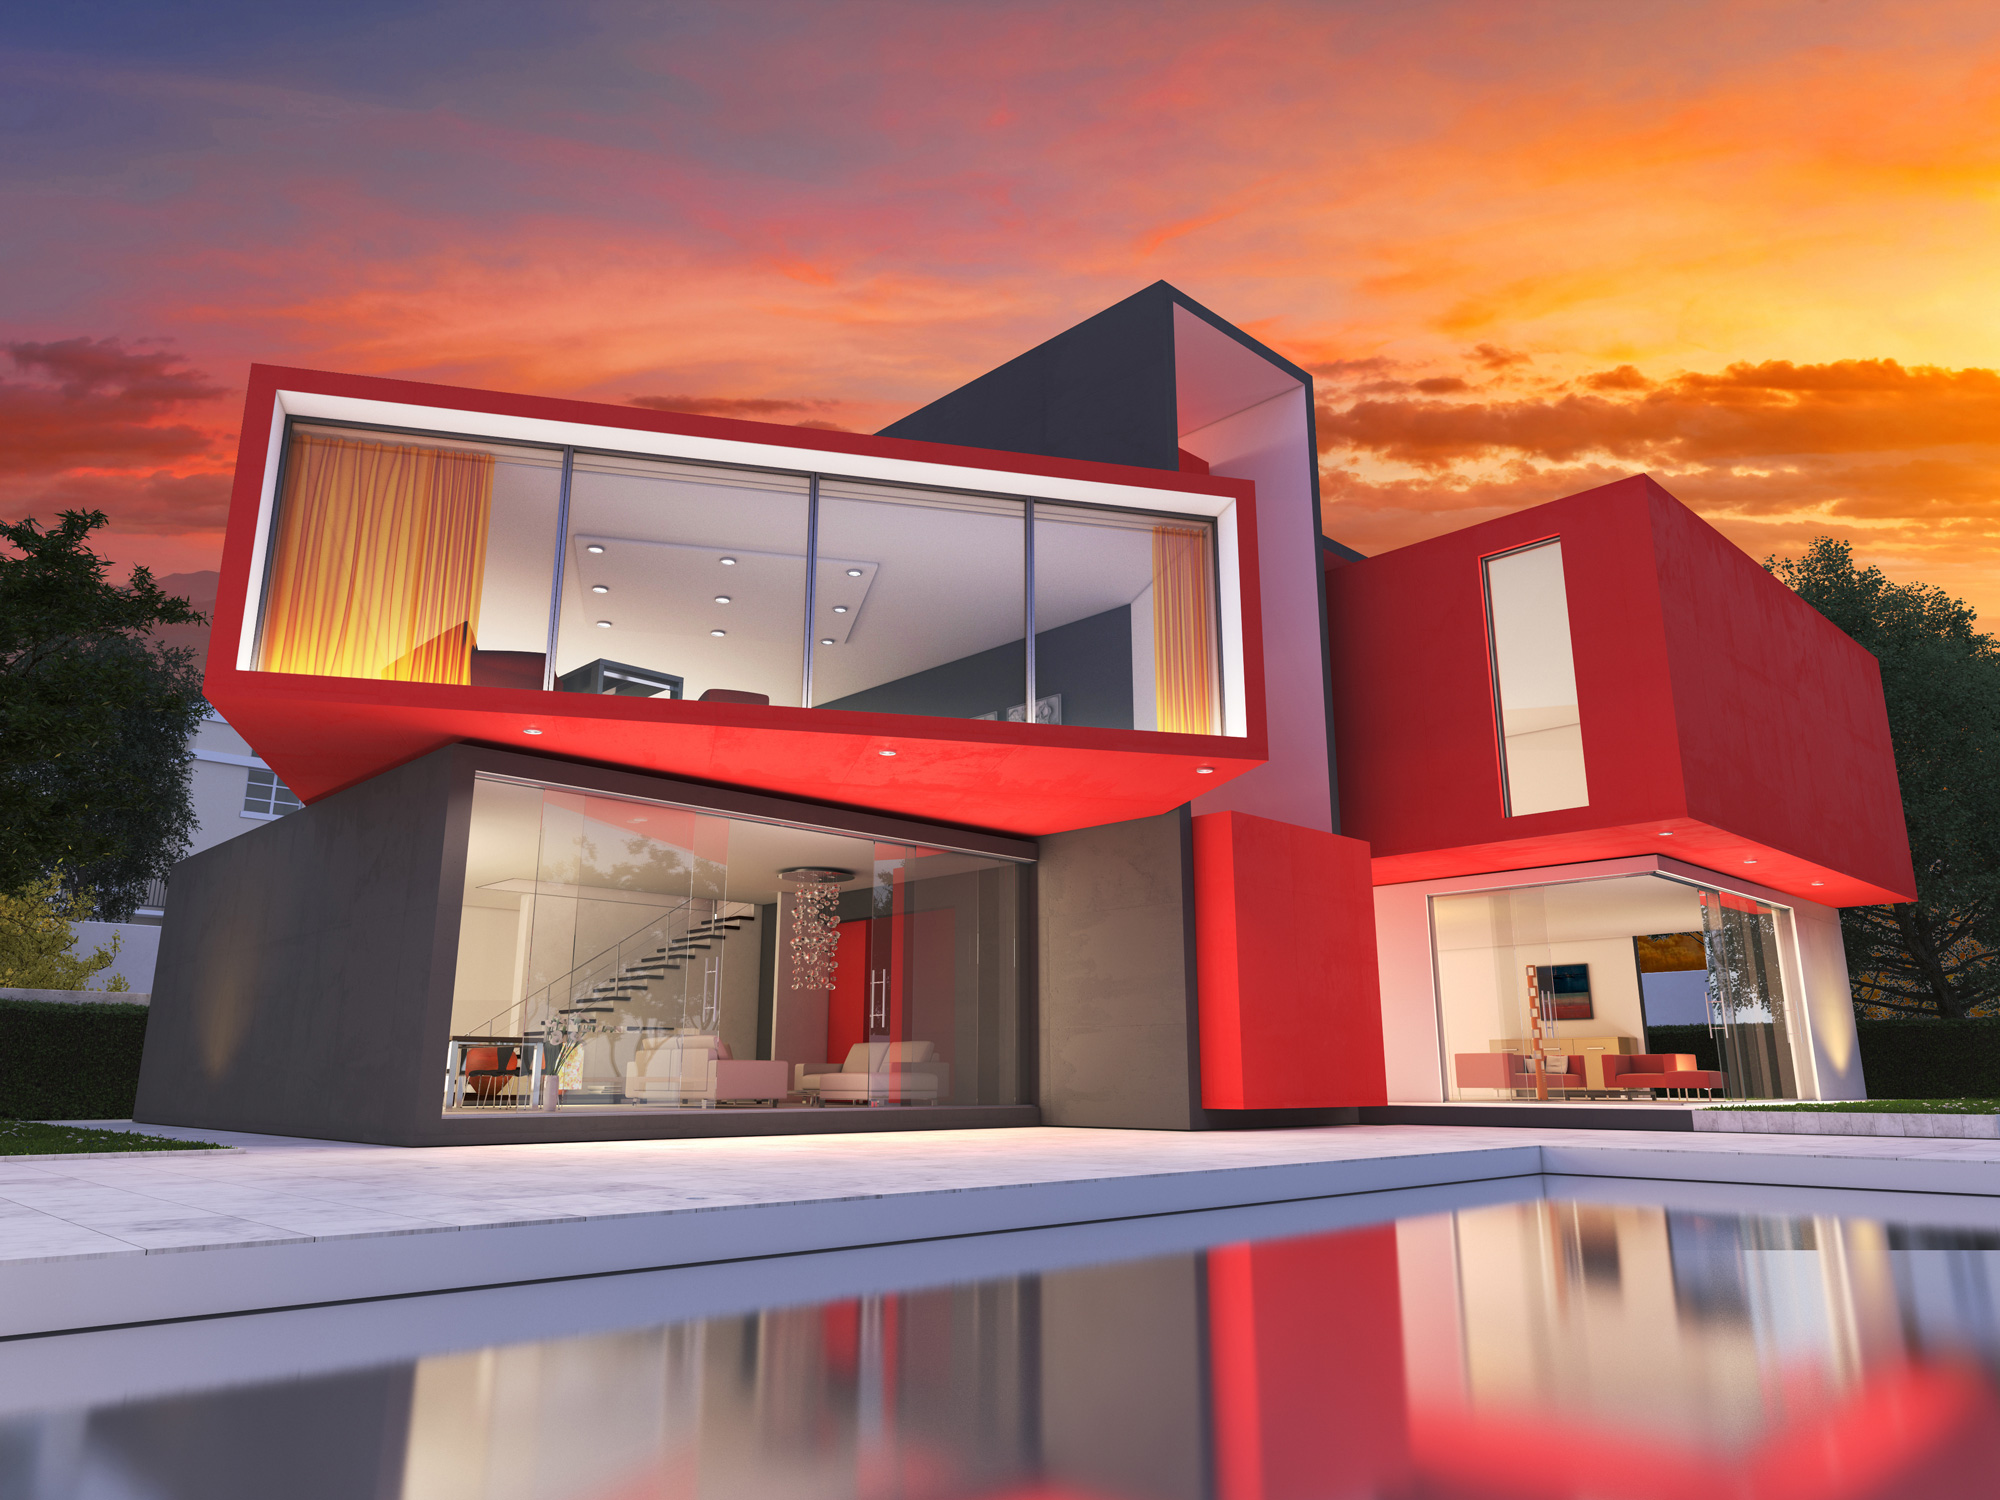 Looking to build your amazing house in Miami